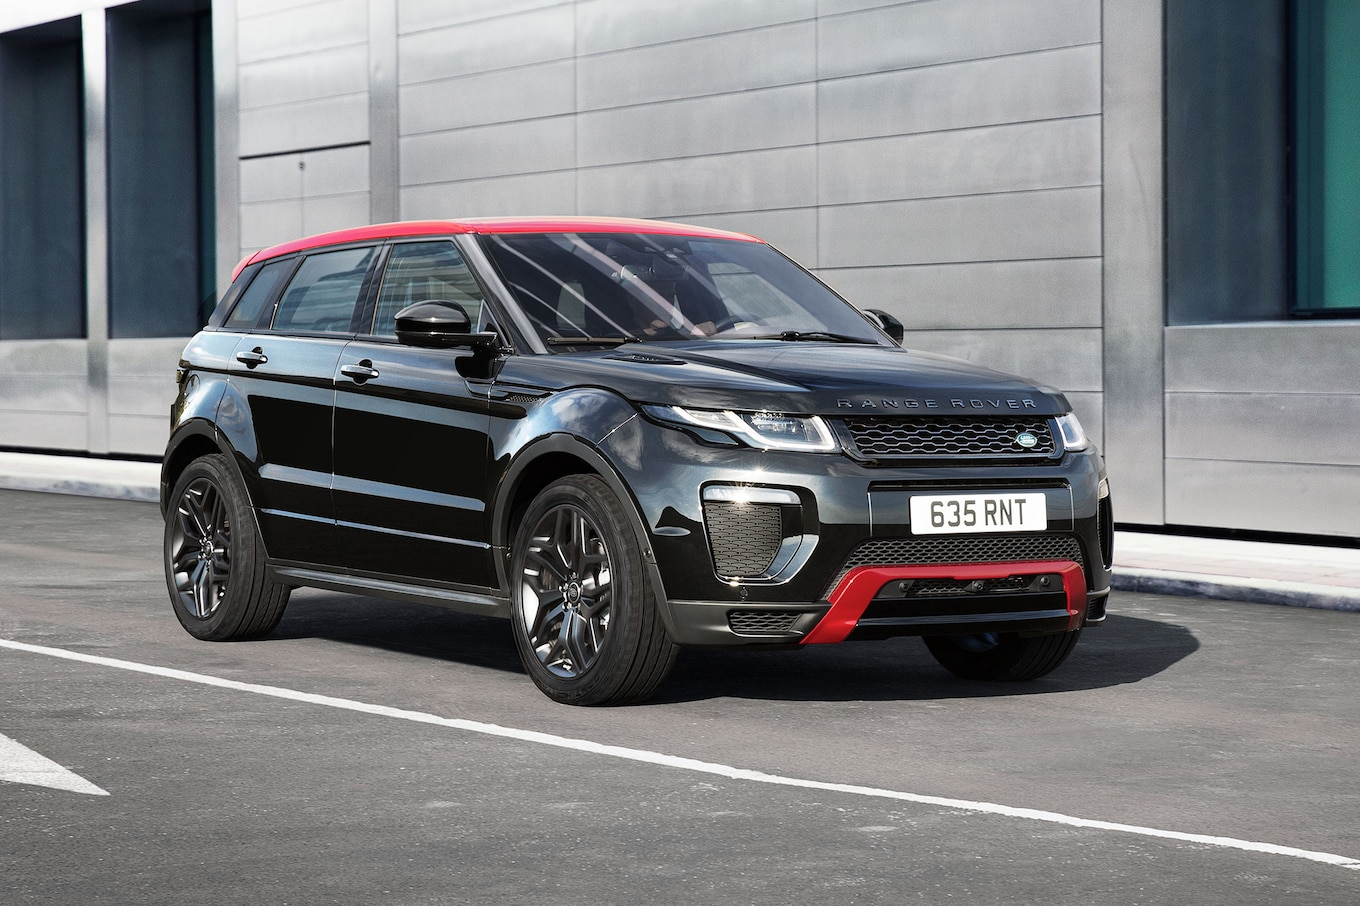 Range Rover Evoque Ember Celebrates Half Million Sales Milestone